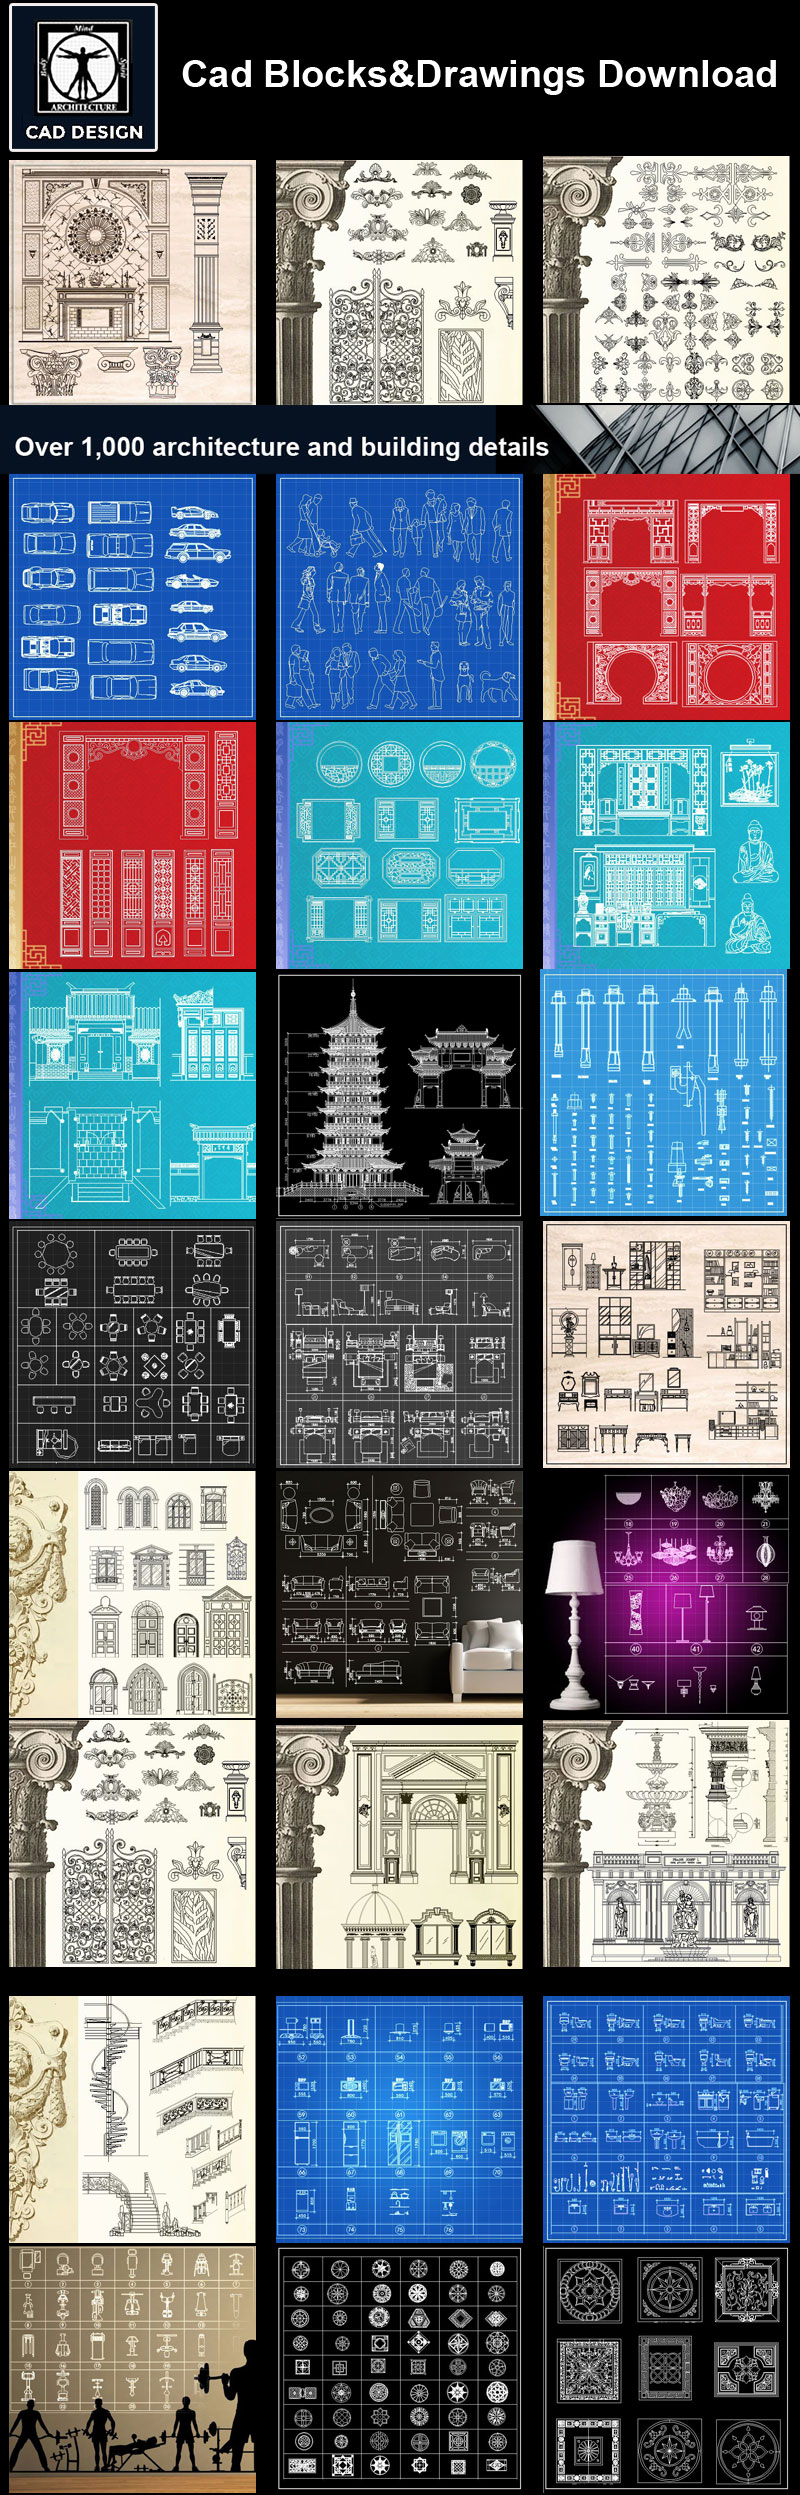 Pin by CAD Blocks&Drawings on 25000 Autocad Blocks & Drawings ...